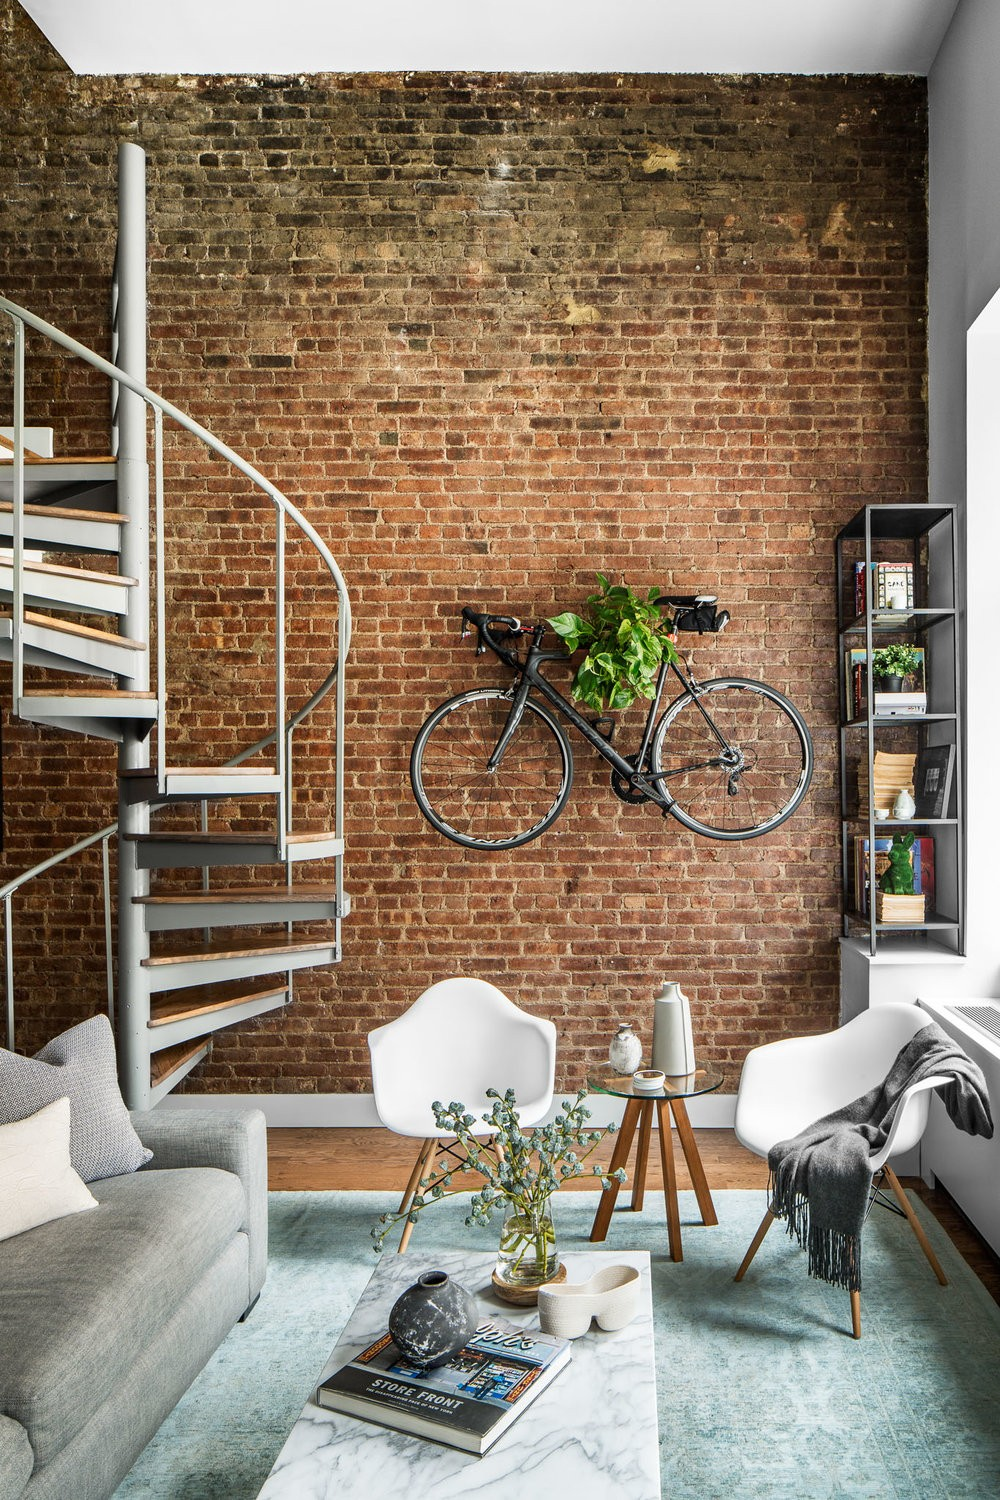 Luxury Real Estate 5 Extremely Cool New York Industrial Lofts (2) Industrial Lofts Luxury Real Estate: 5 Extremely Cool New York Industrial Lofts Luxury Real Estate 5 Extremely Cool New York Industrial Lofts 2